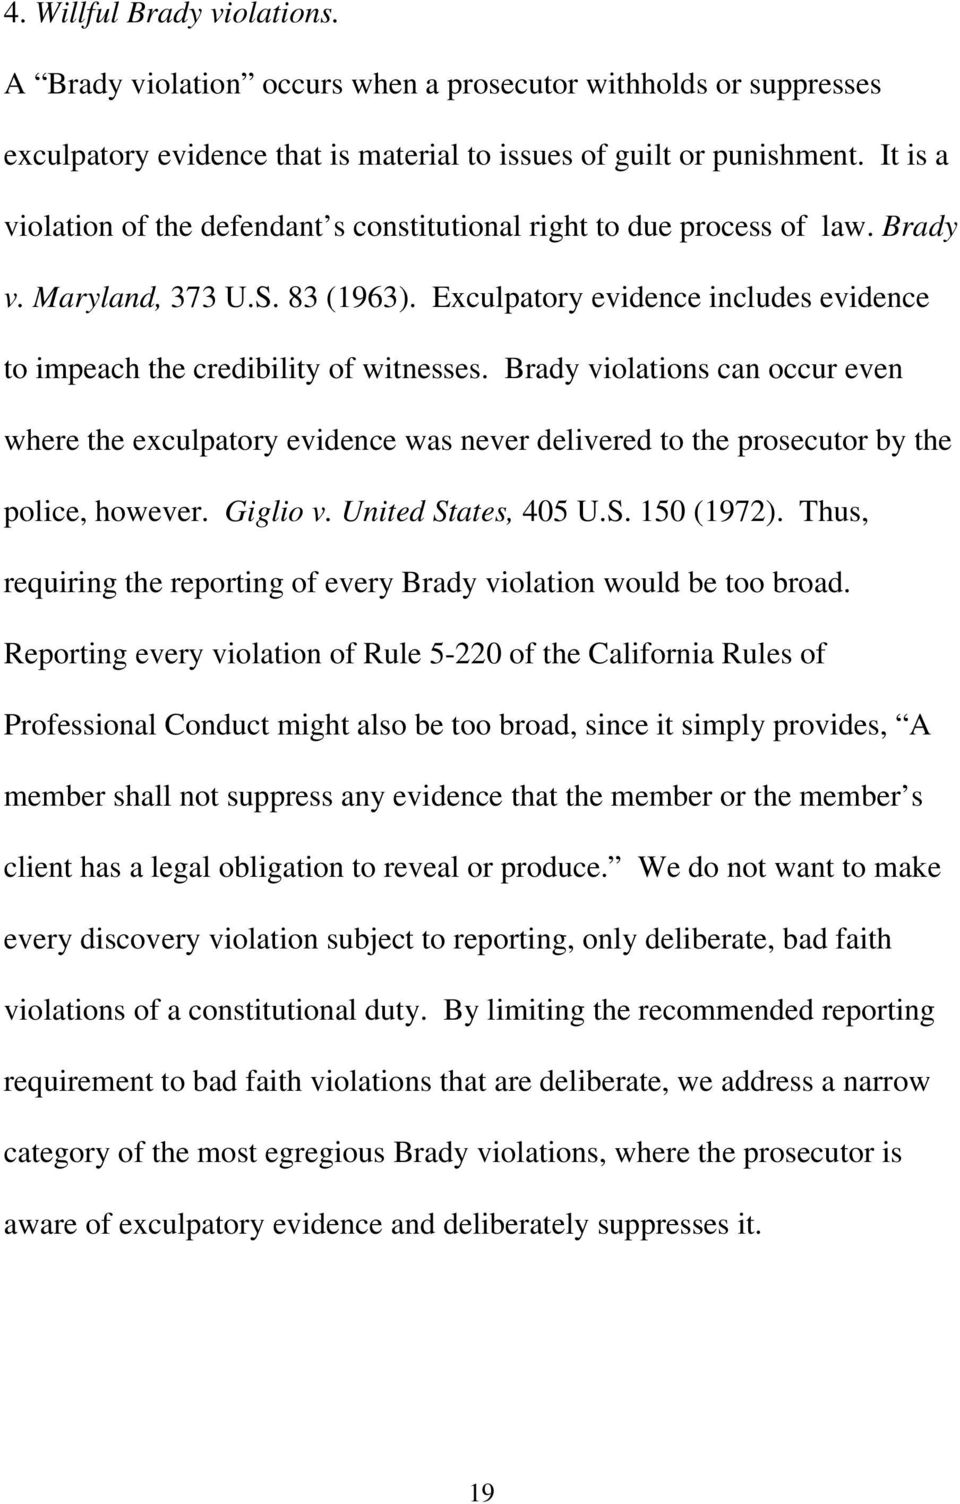 Brady violations can occur even where the exculpatory evidence was never delivered to the prosecutor by the police, however. Giglio v. United States, 405 U.S. 150 (1972).